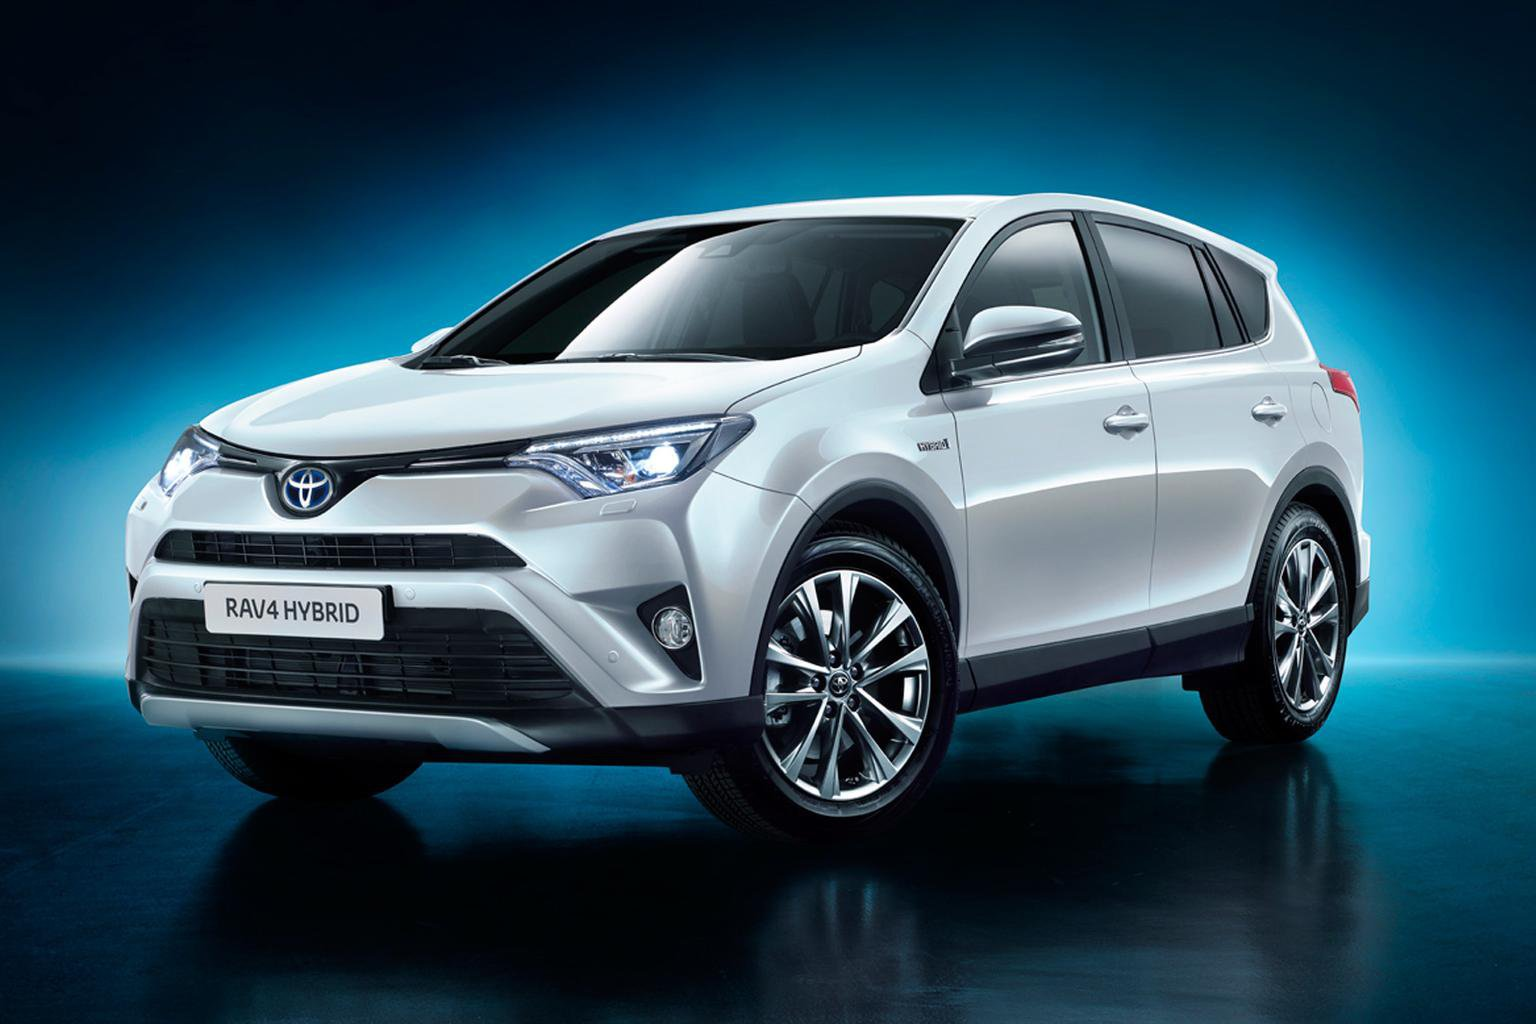 2015 Toyota RAV4 - engines, specs and pictures